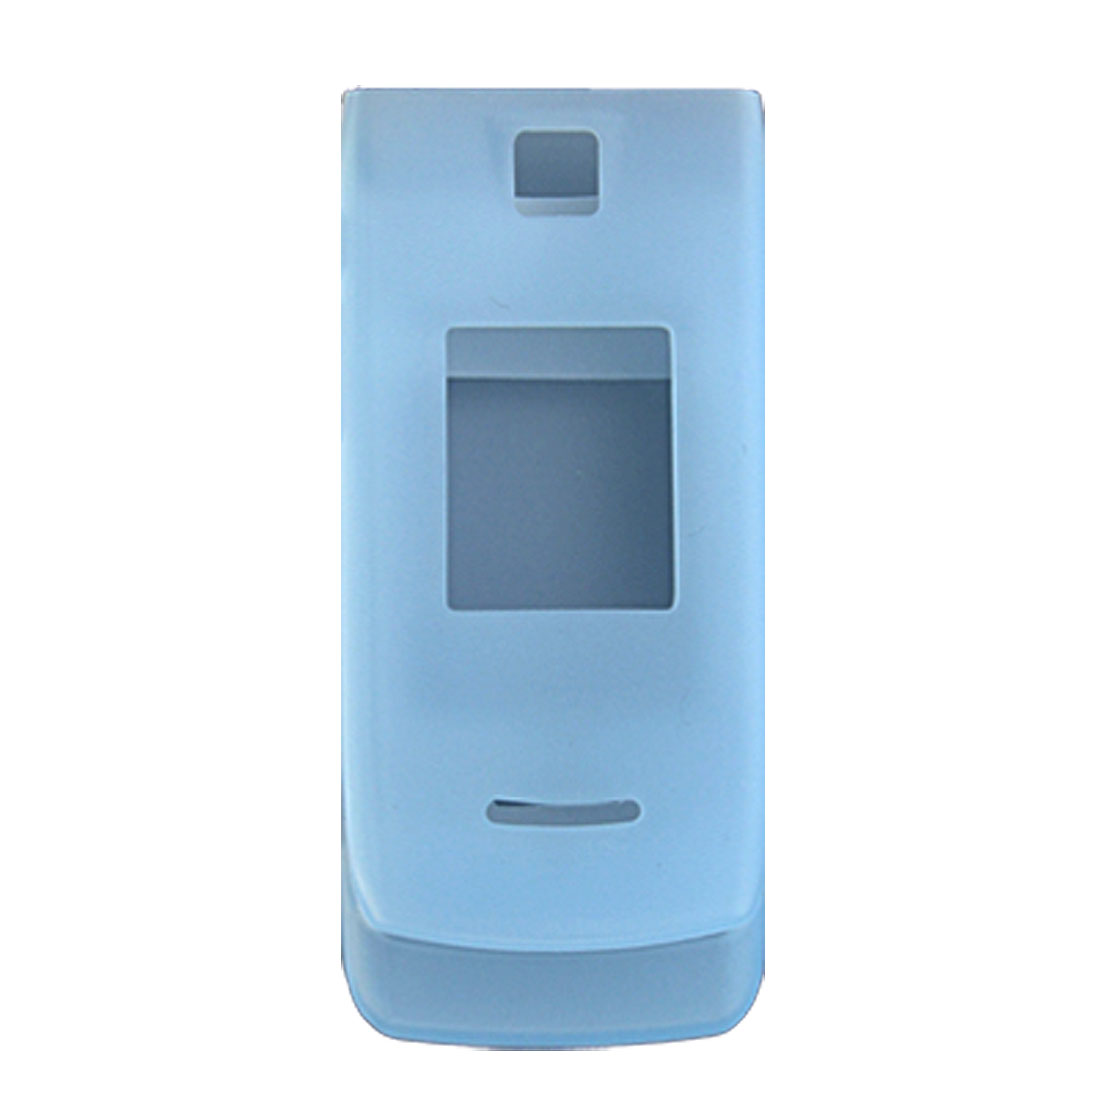 Light Blue Silicone Skin Case Cover for Nokia 3610 Fold